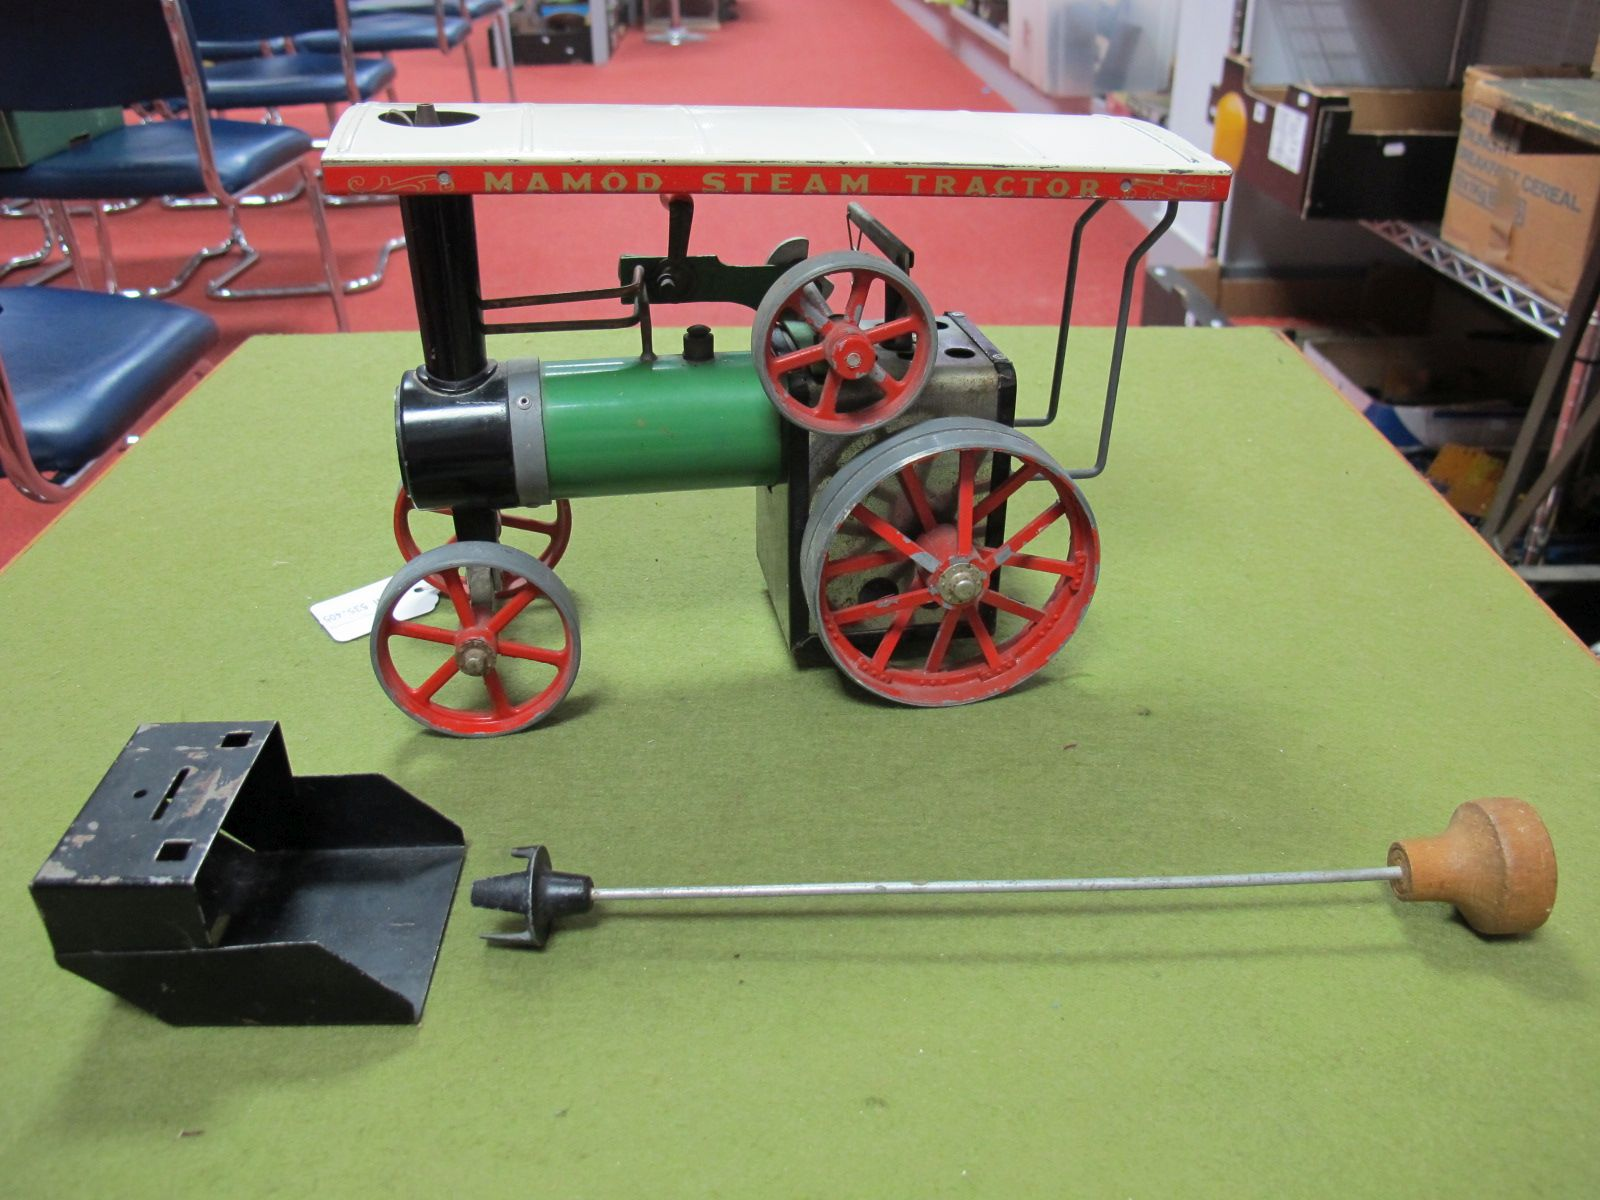 Lot 21 - A Mamod Live Steam TE1A Traction Engine, model has been steamed, with scuttle and in correct